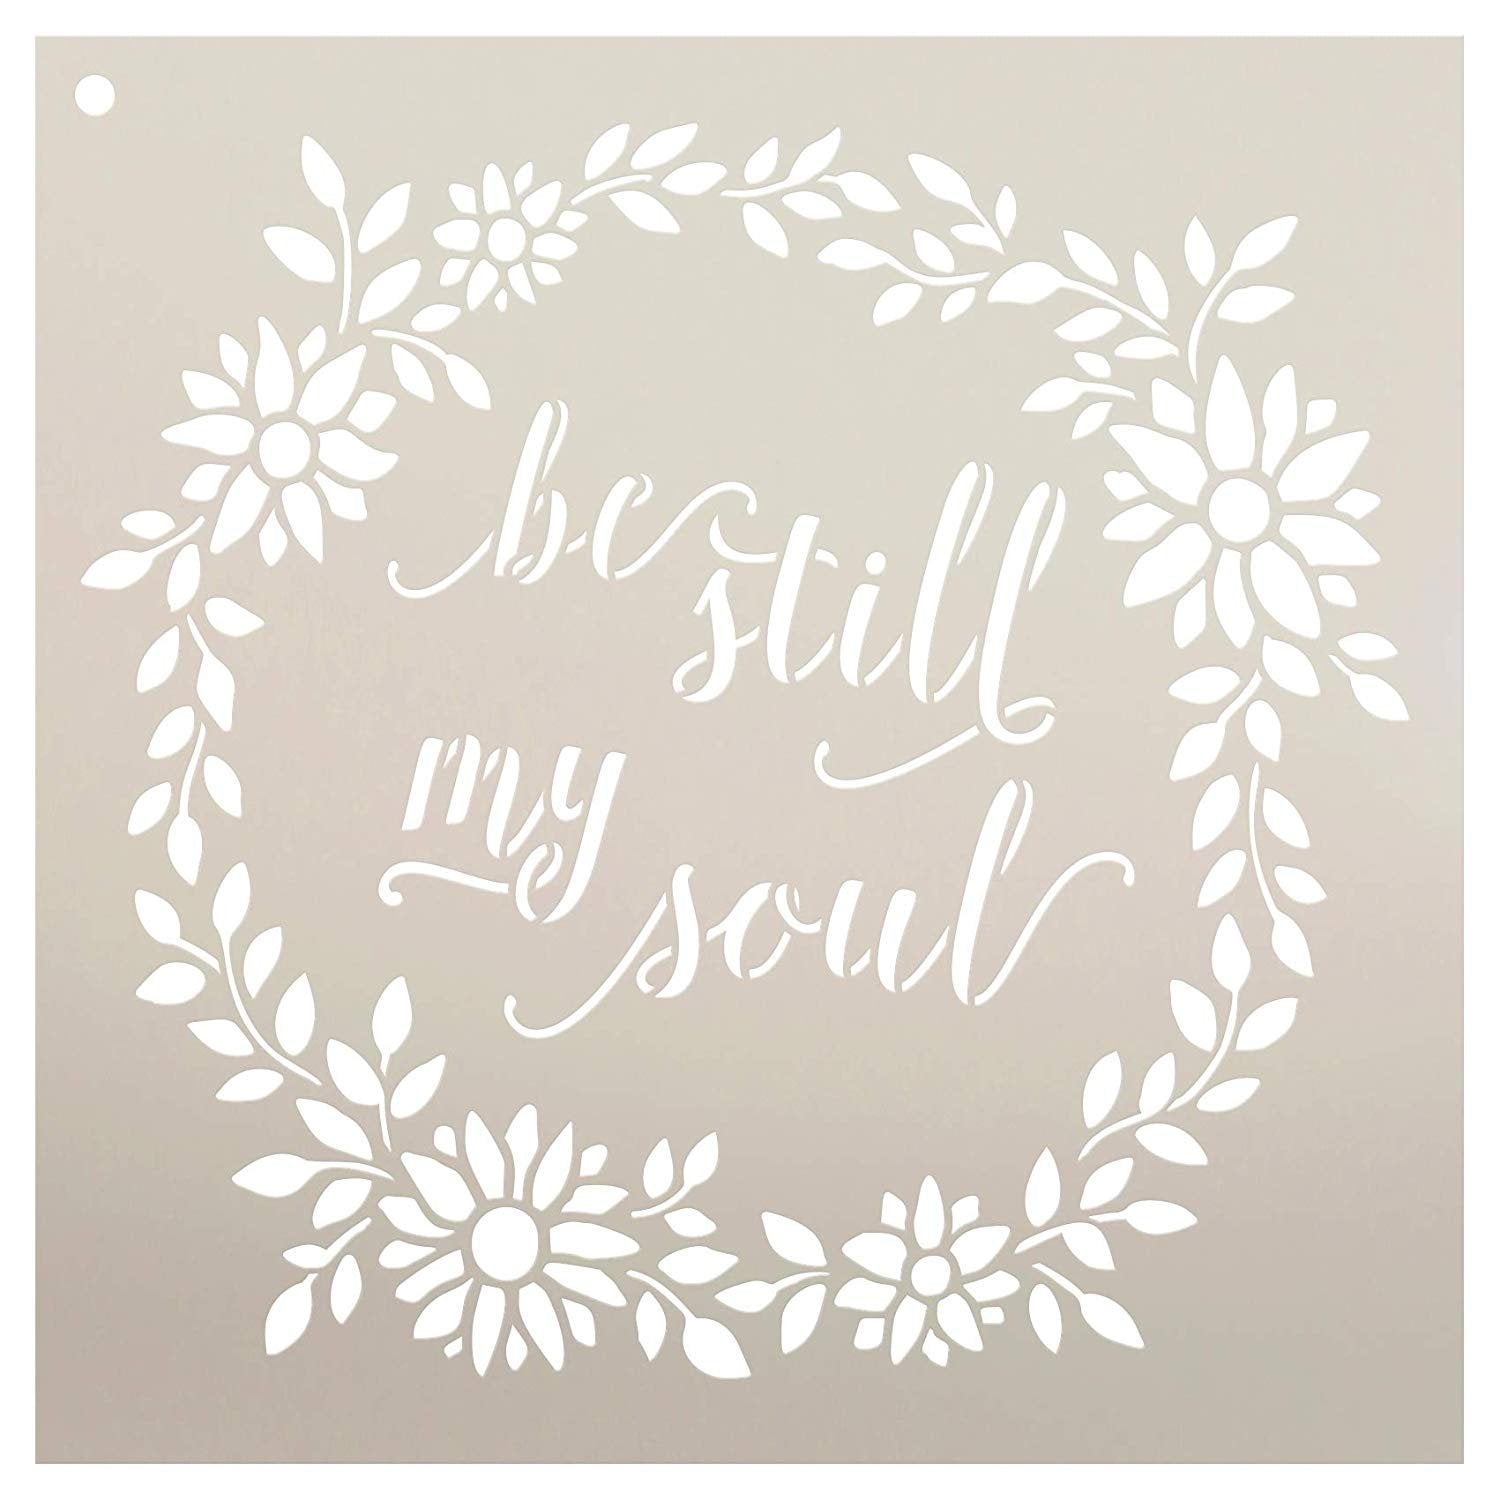 Be Still My Soul with Floral Wreath by StudioR12 | Reusable Mylar Template | Use to Paint Wood Signs - Pallets - Walls - Pillows - DIY Faith Decor - Select Size